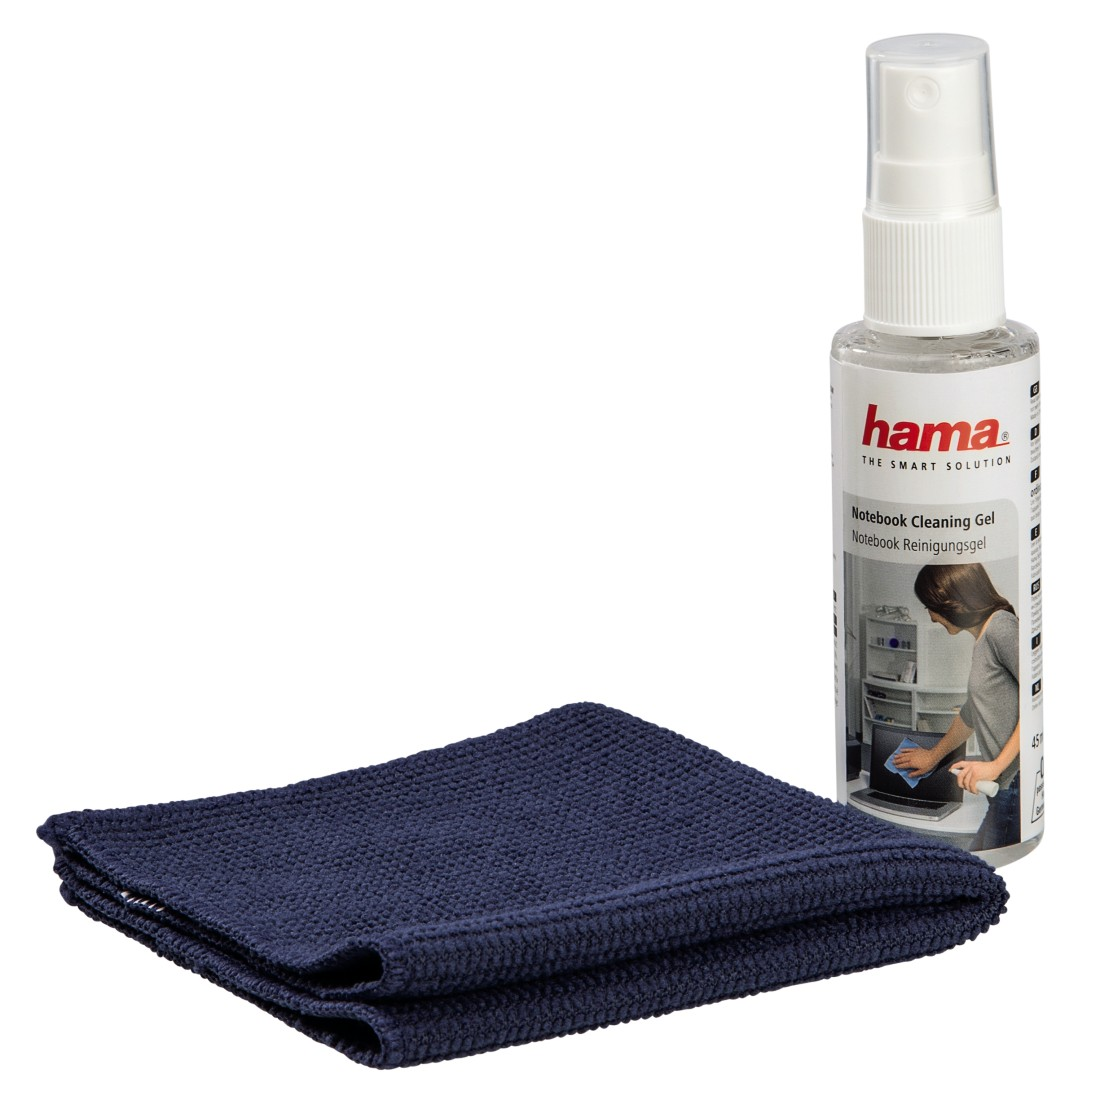 abx2 High-Res Image 2 - Hama, Notebook Cleaning Gel and Microfiber Cloth